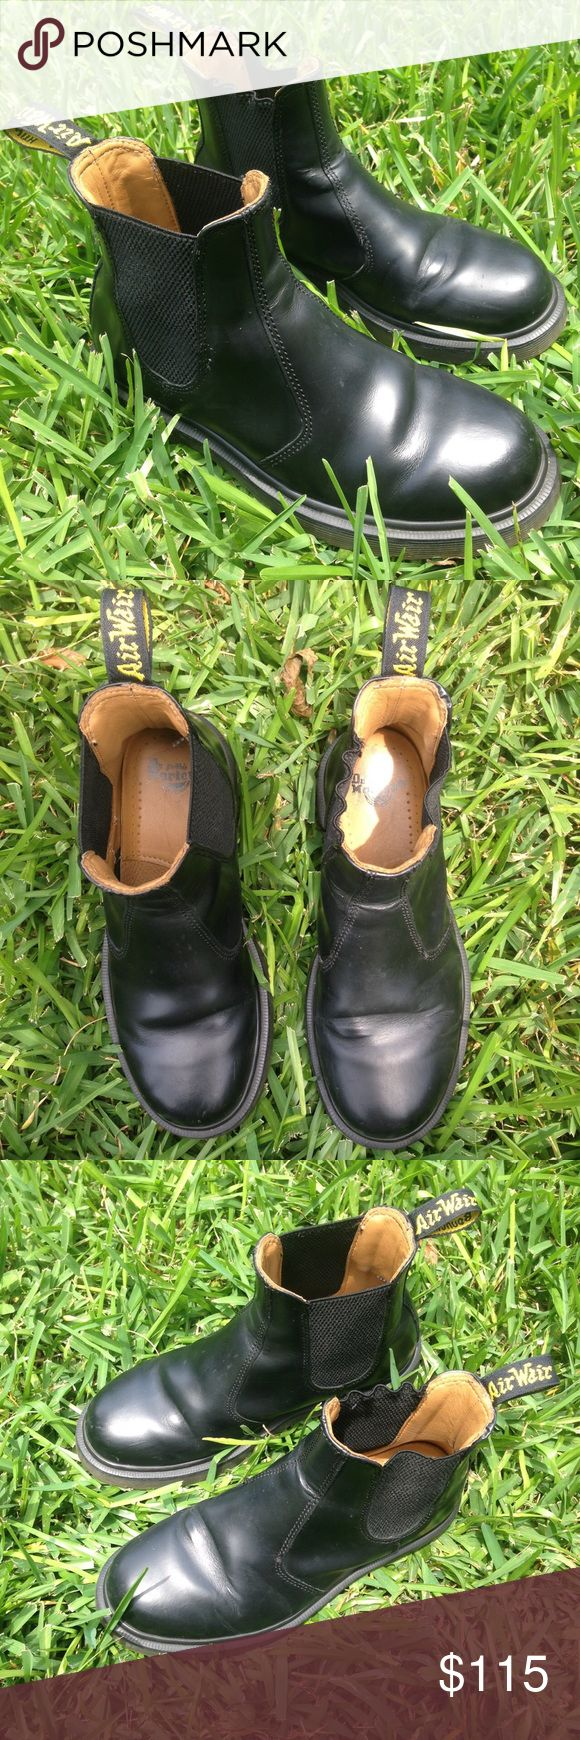 Authentic Dr. Marten 2976 Used Chelsea Boots! These used Chelsea boots are in great condition and super comfy! Message me if you have any questions or want more pics! Dr. Martens Shoes Ankle Boots & Booties